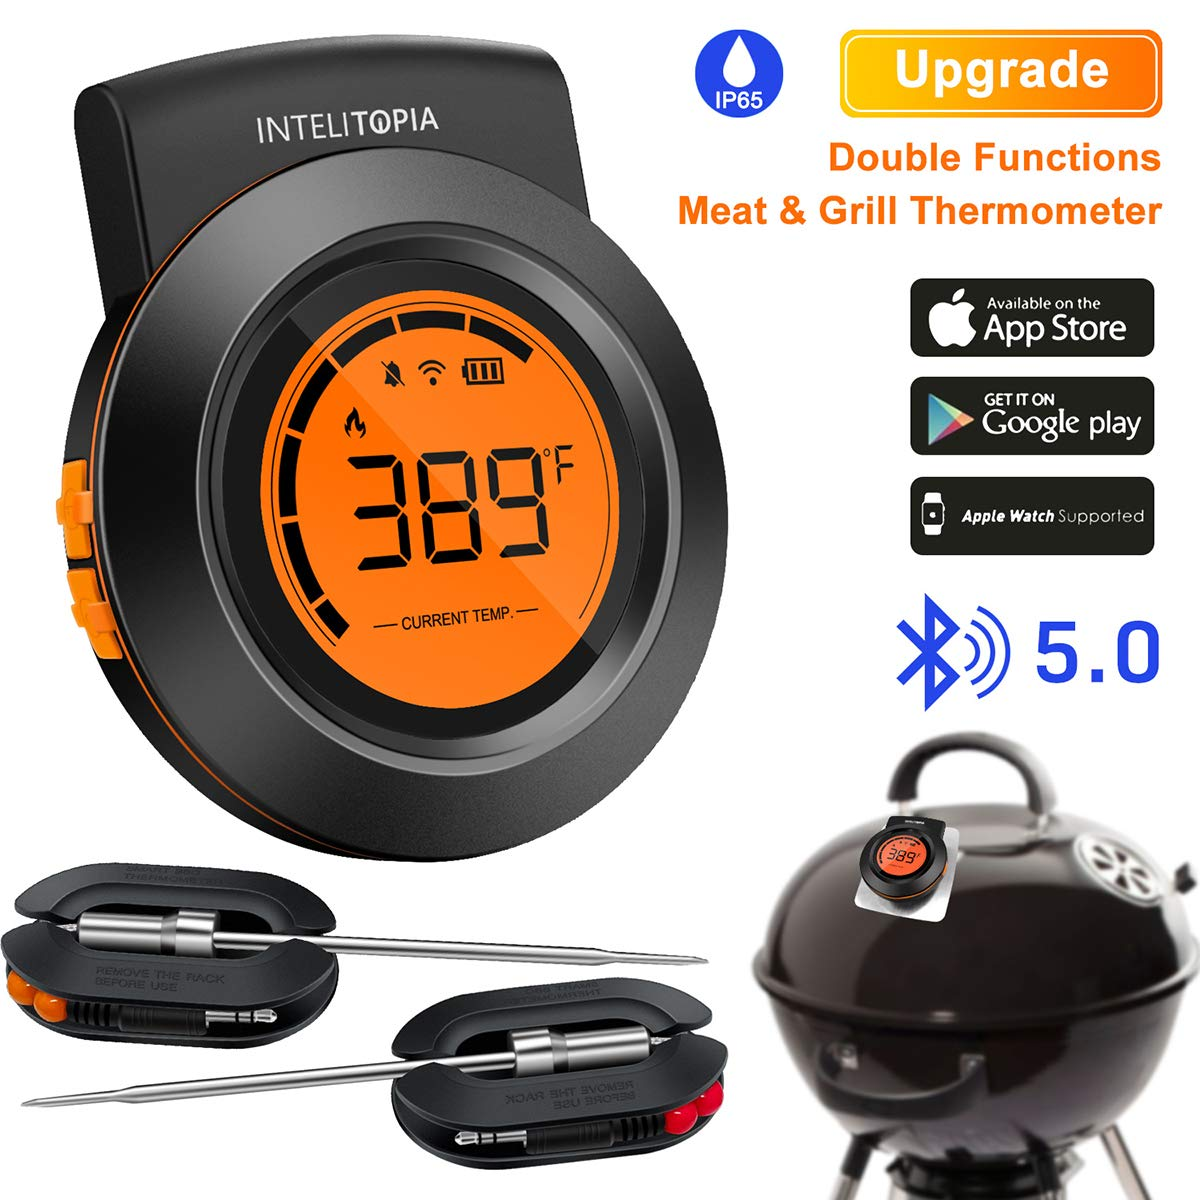 Bluetooth Meat Thermometer for Grilling, Wireless Charcoal Grill Thermometer Digital BBQ Wood Pellet Smoker Thermometer for Barbecue Kitchen Cooking with 2 Probes, Alarm Monitor Support IOS & Android